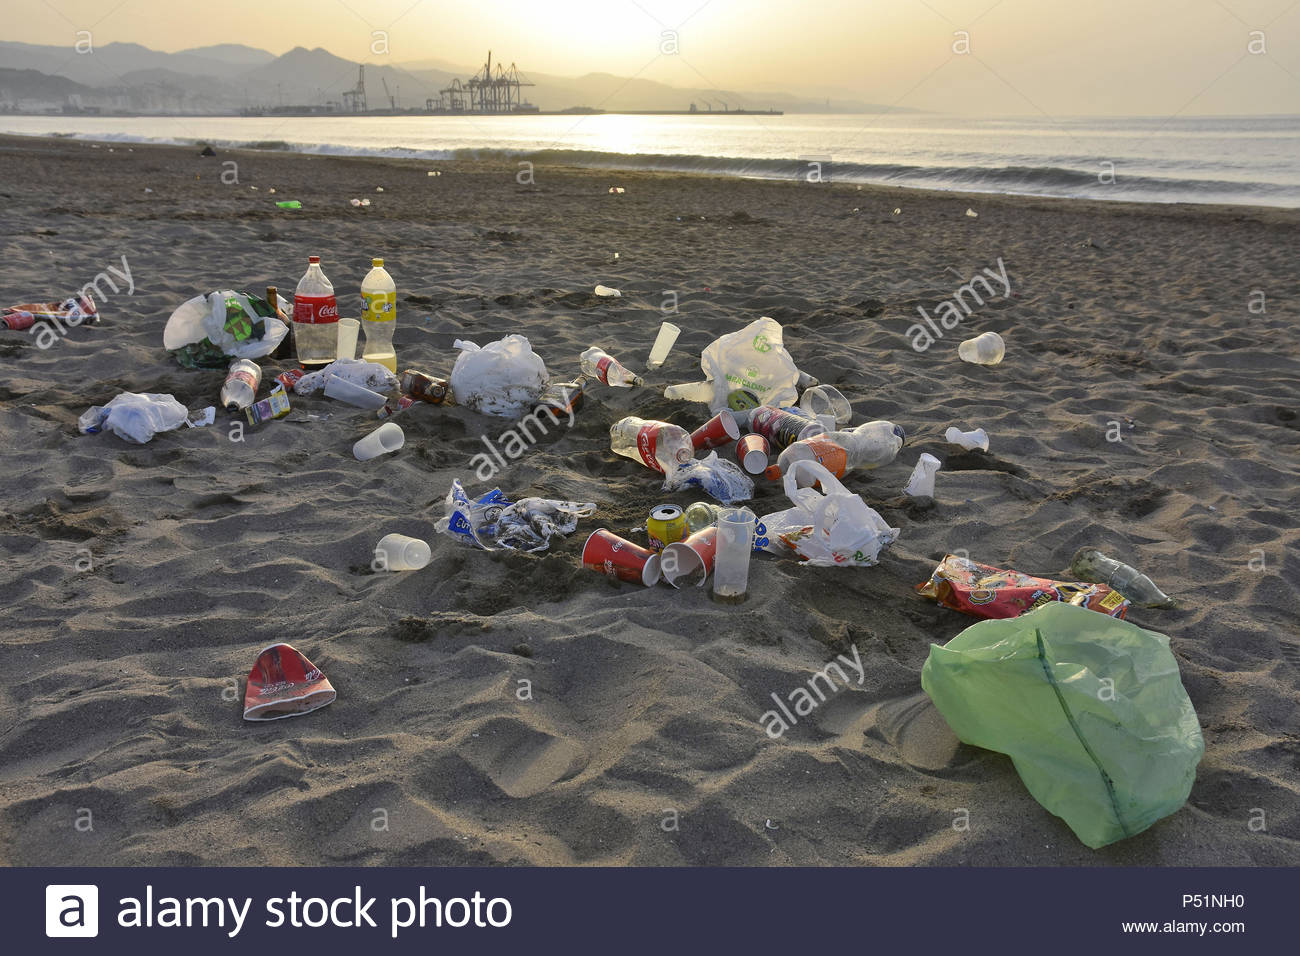 Rubbish left on the beach of Malaga after night party, industrial port in background, Andalusia Southern Spain Europe. - Stock Image